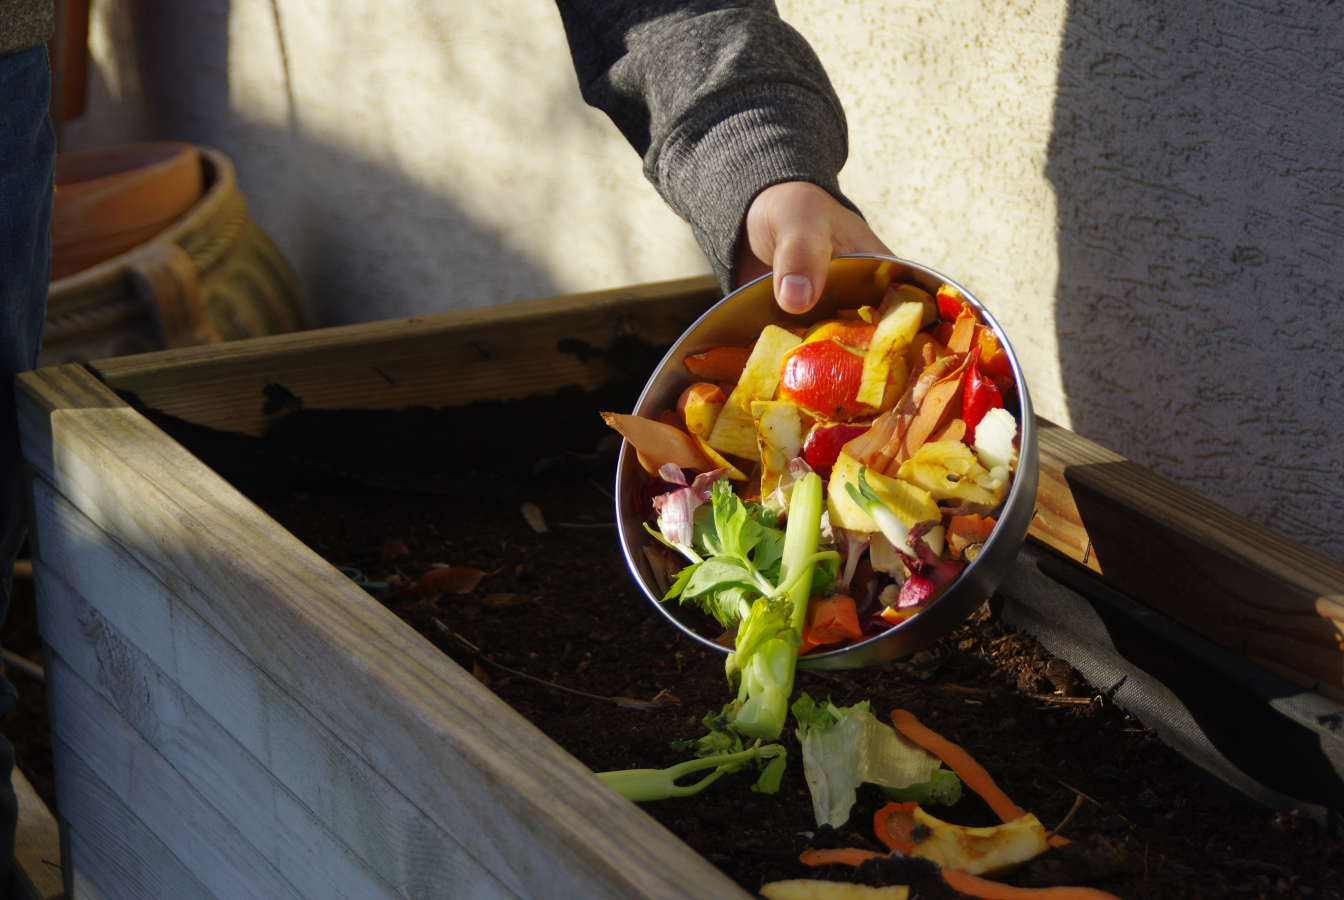 Food remains being properly composted.